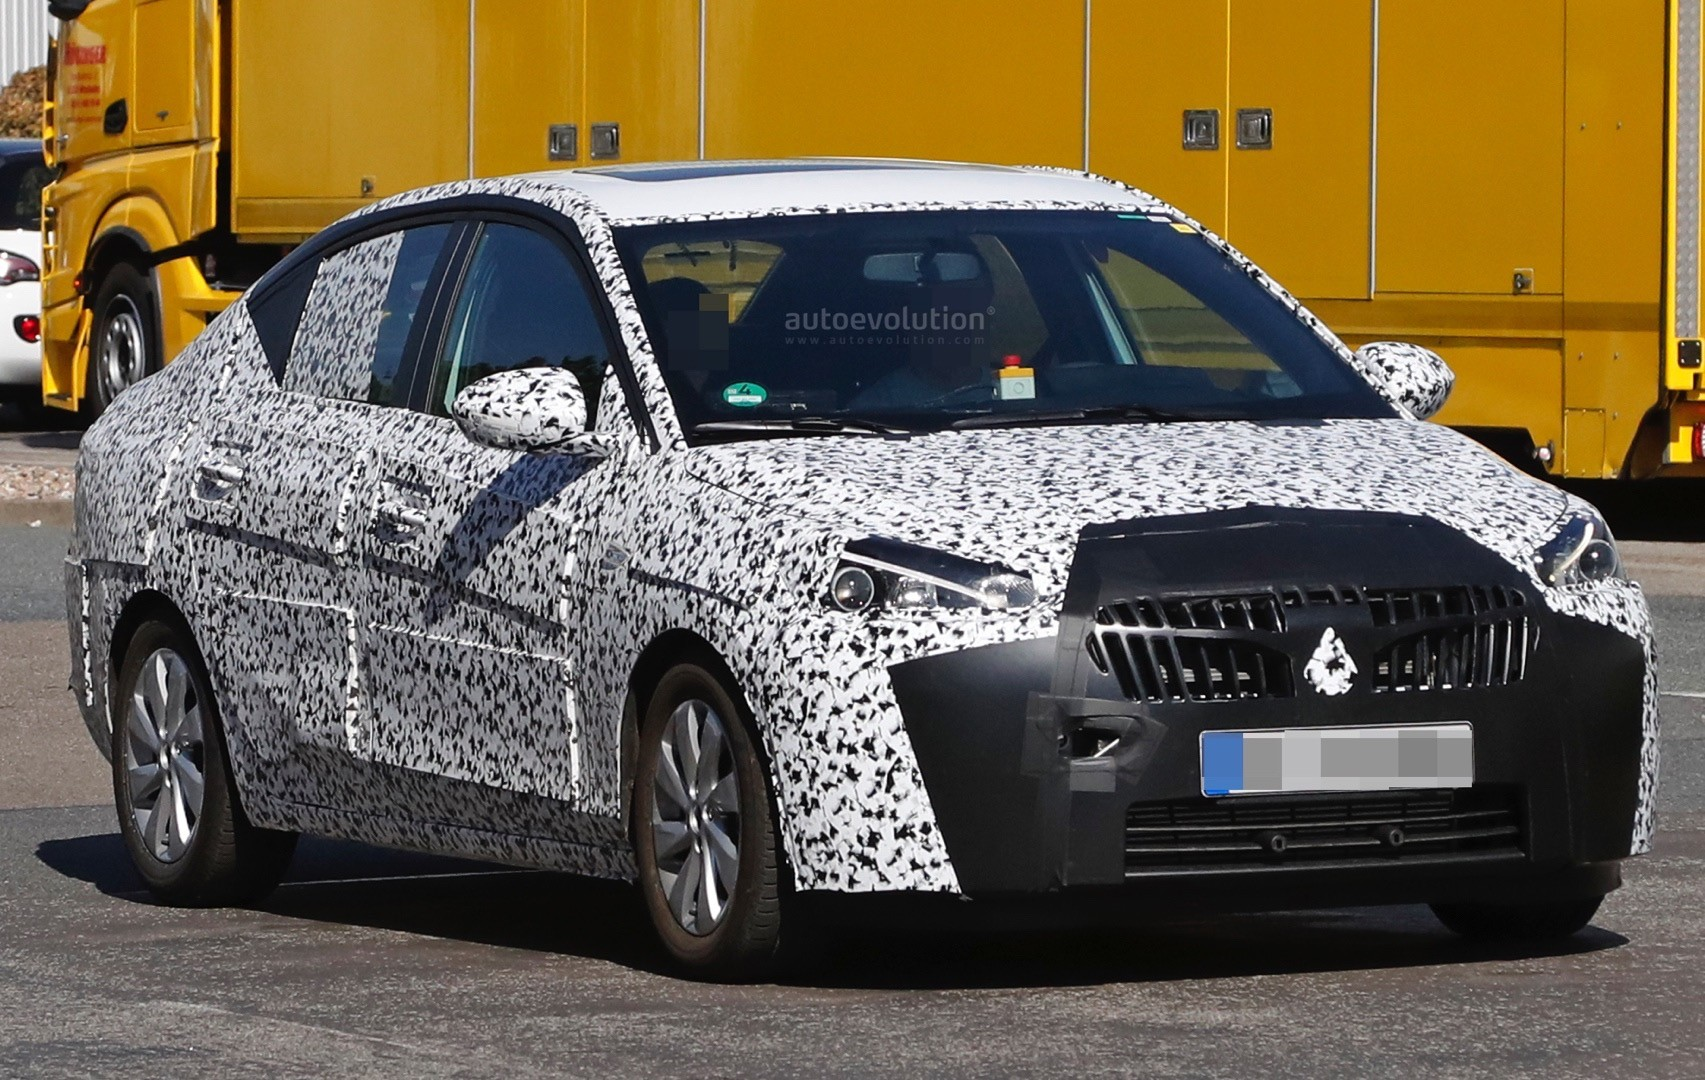 2019- [Opel] Corsa F [P2JO] - Page 3 2018-opel-corsa-f-sedan-spied-to-be-launched-in-china-as-2018-chevrolet-sail_1